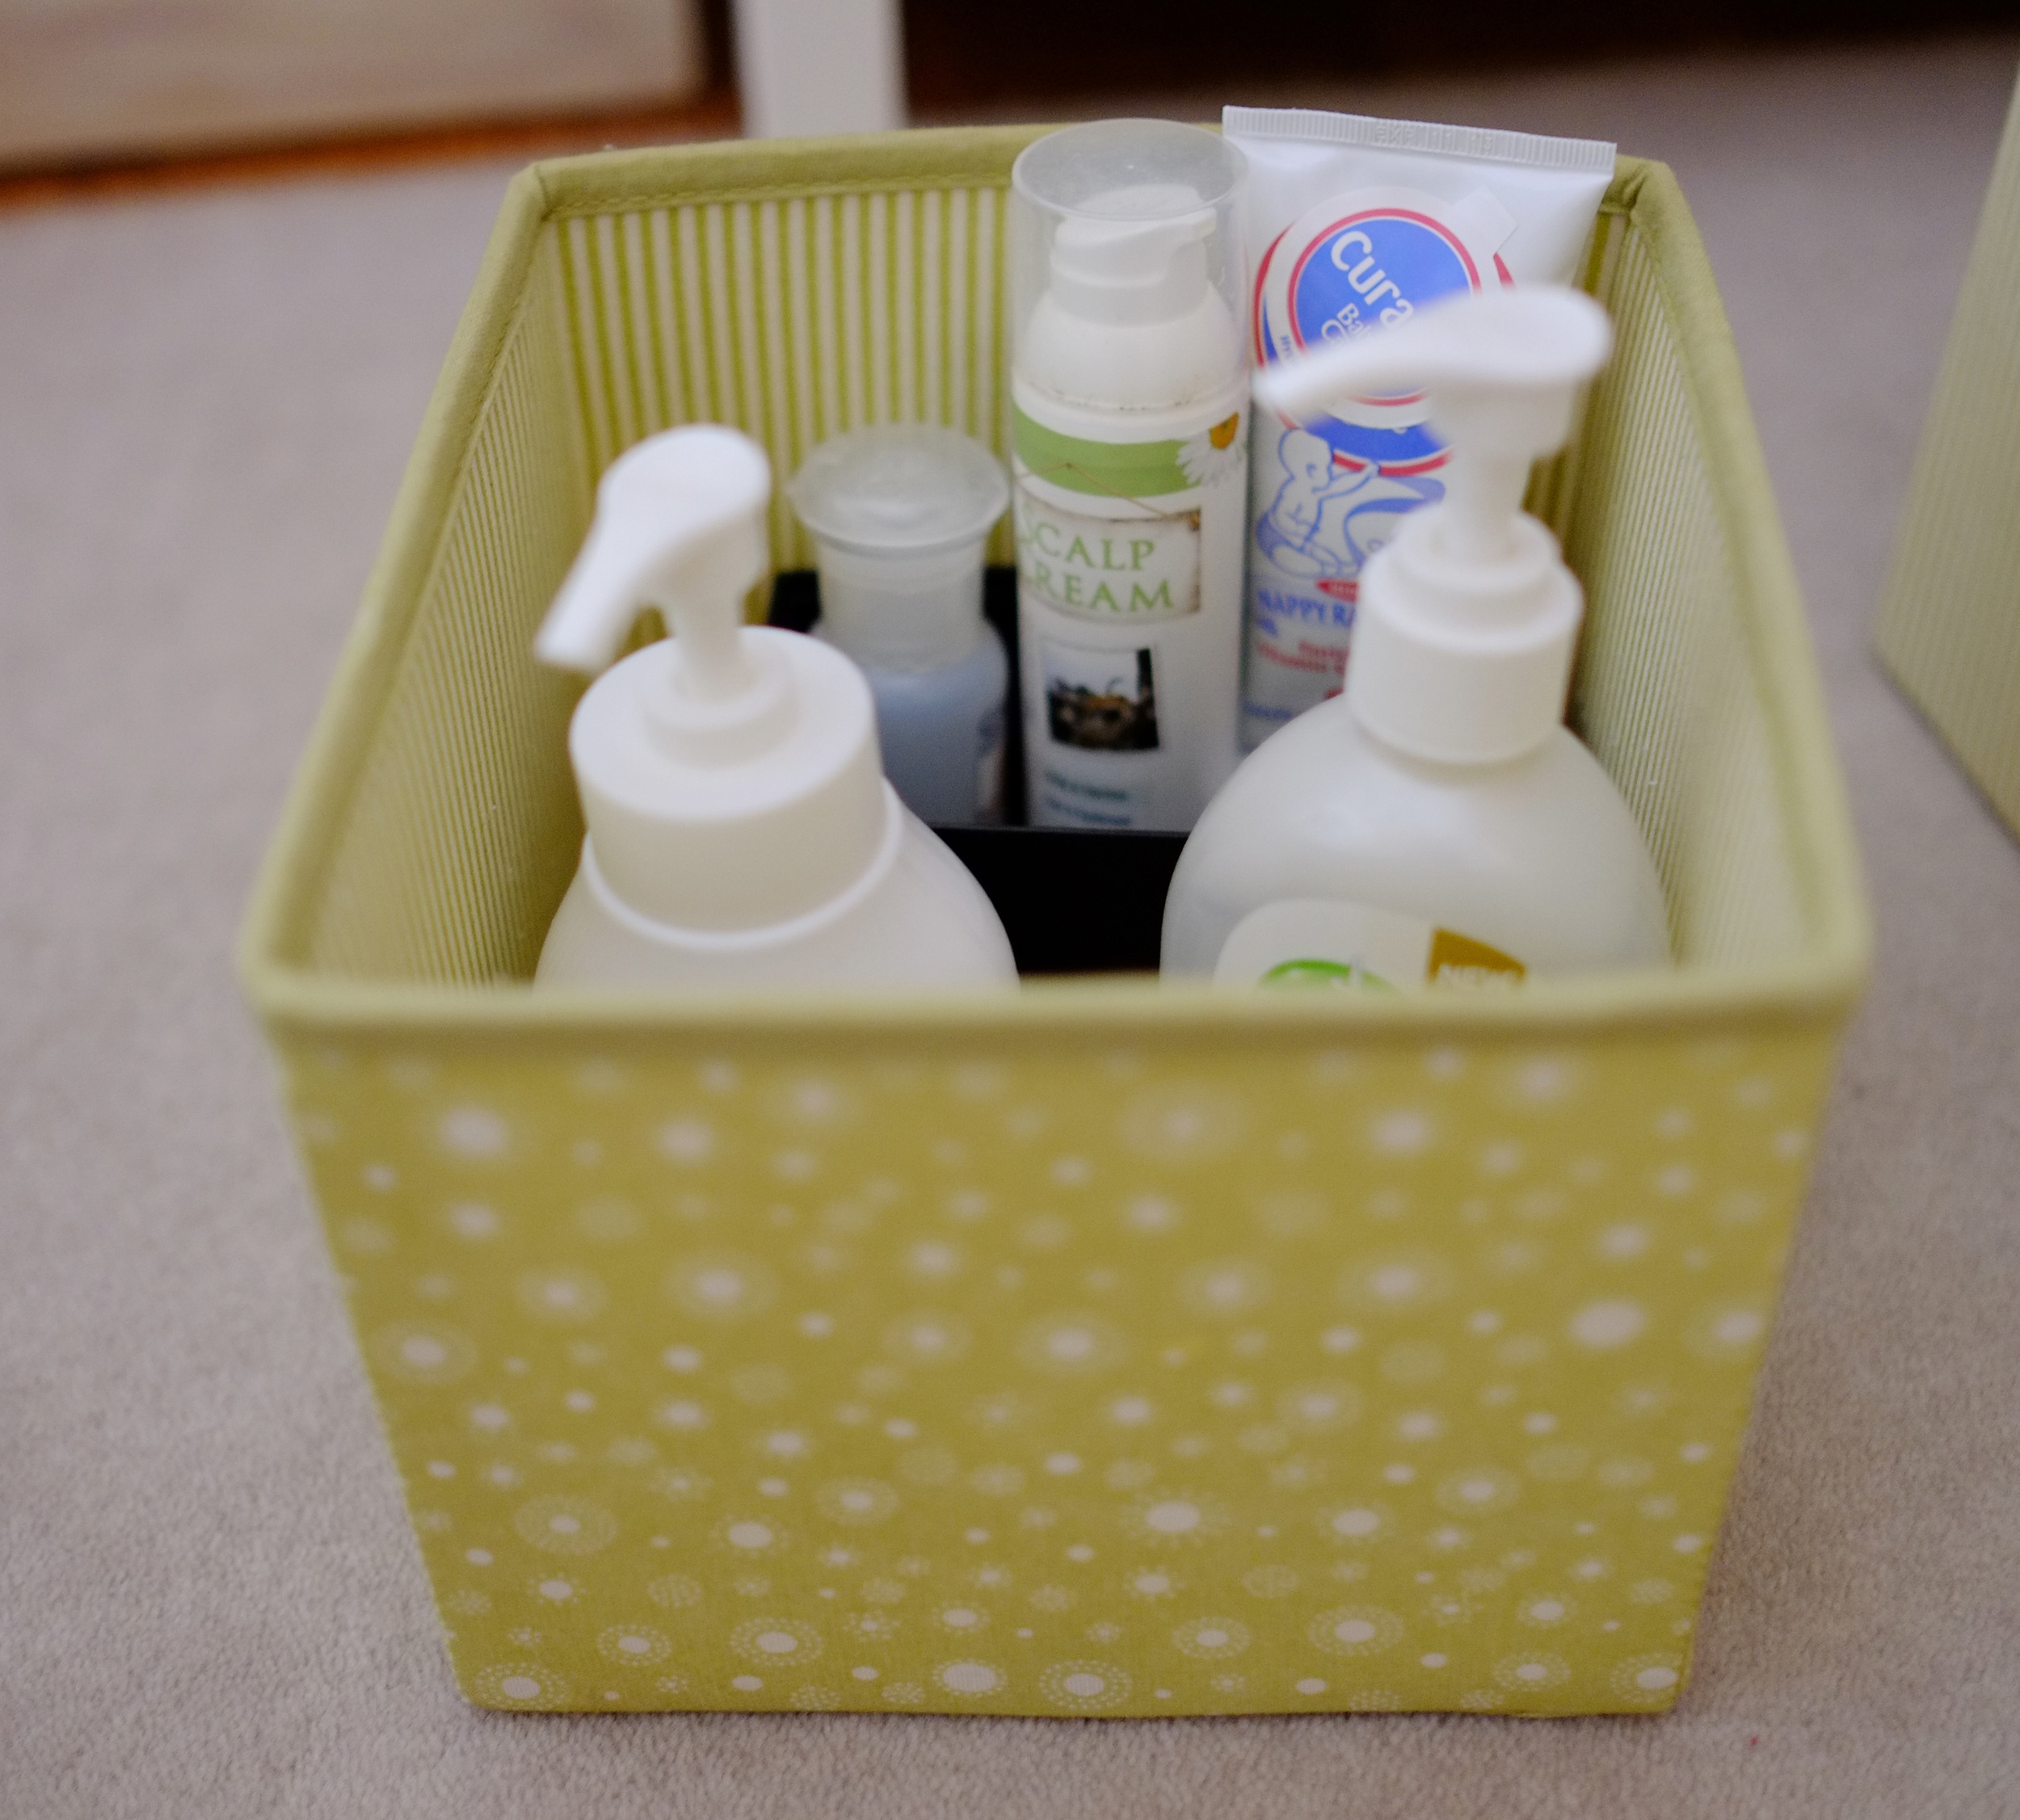 organised products